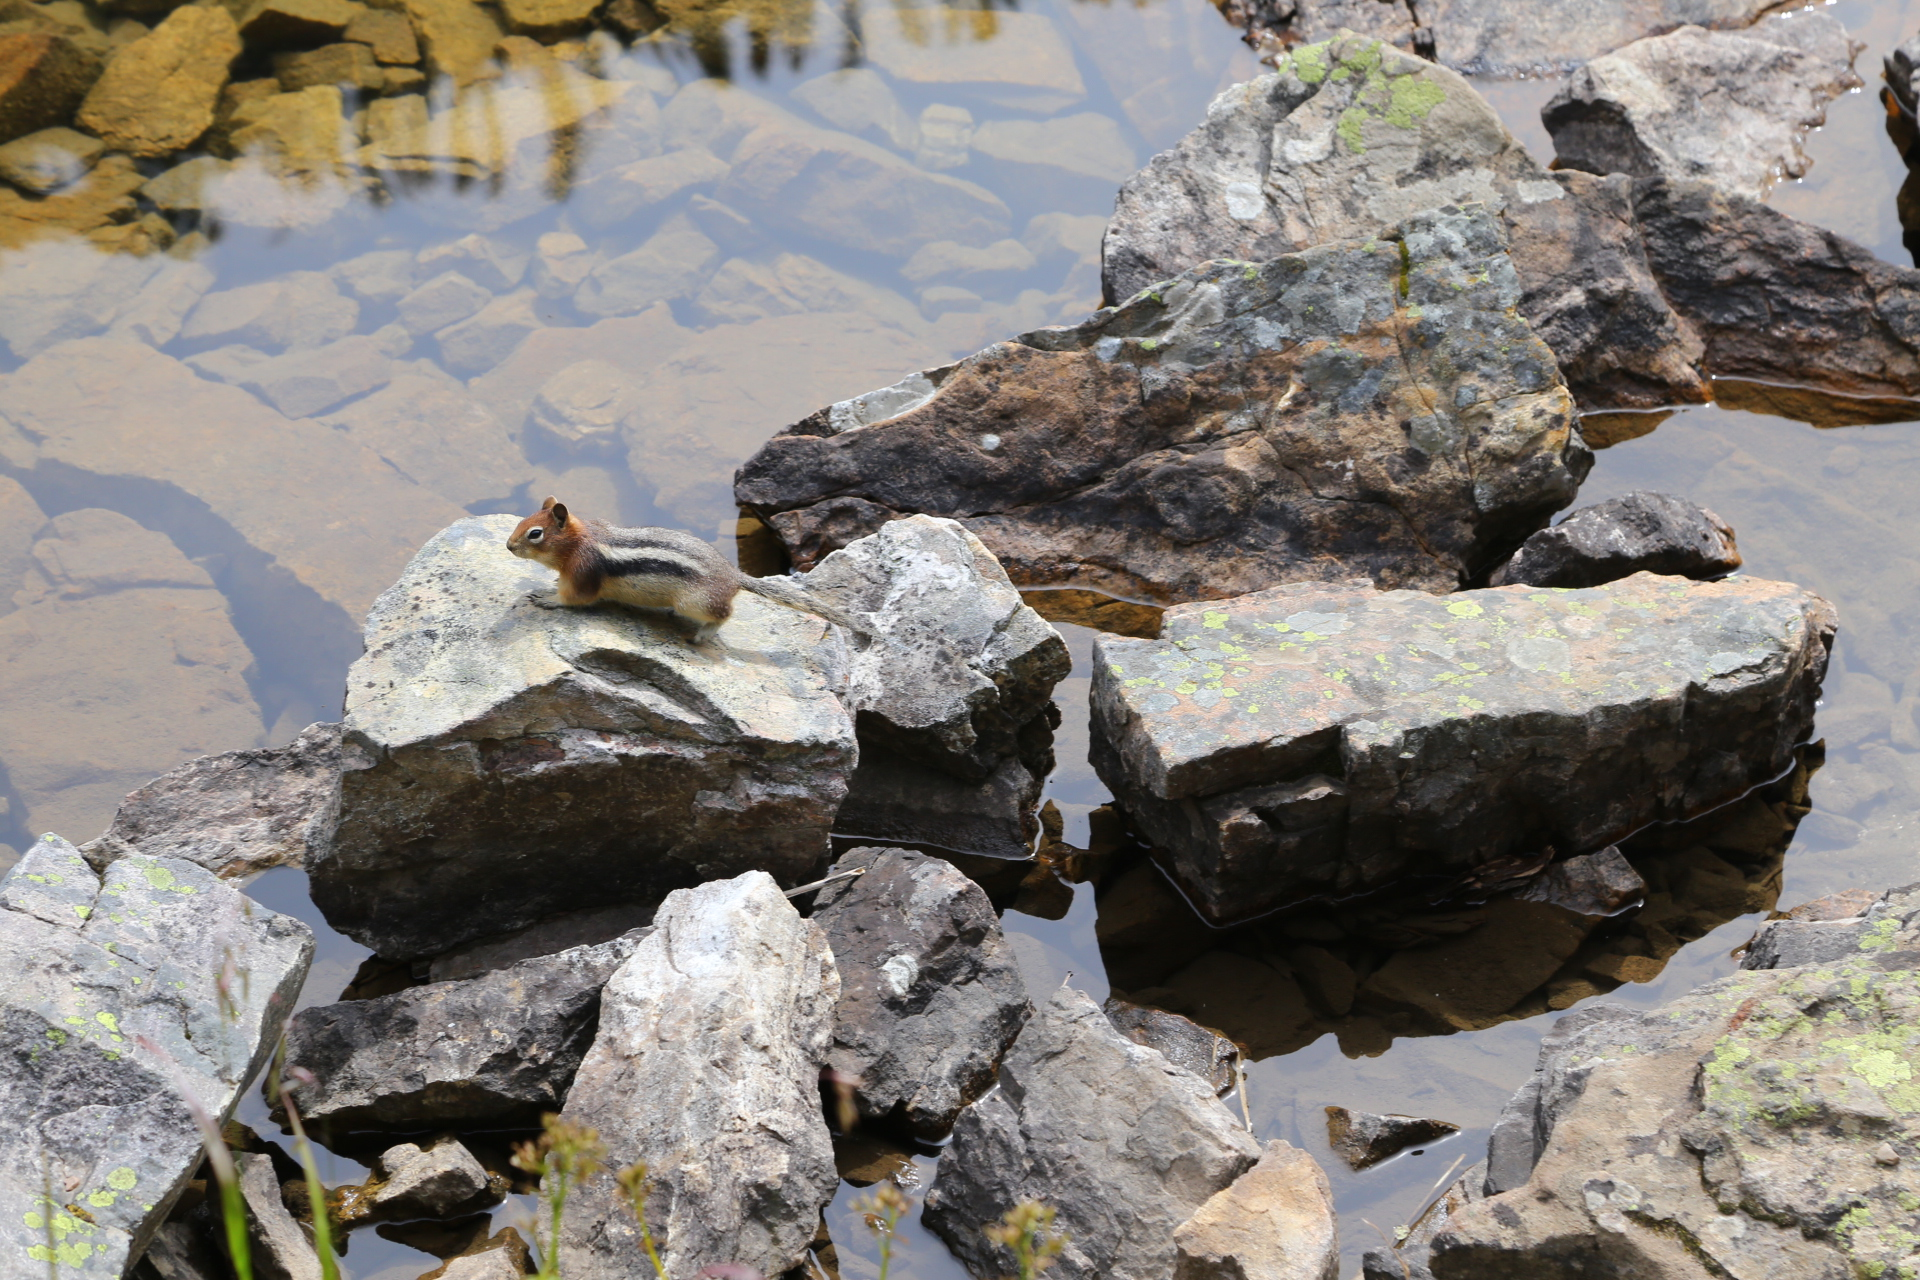 Erie Nick Lake Louise City Guide: Lake Agnes ground squirrel